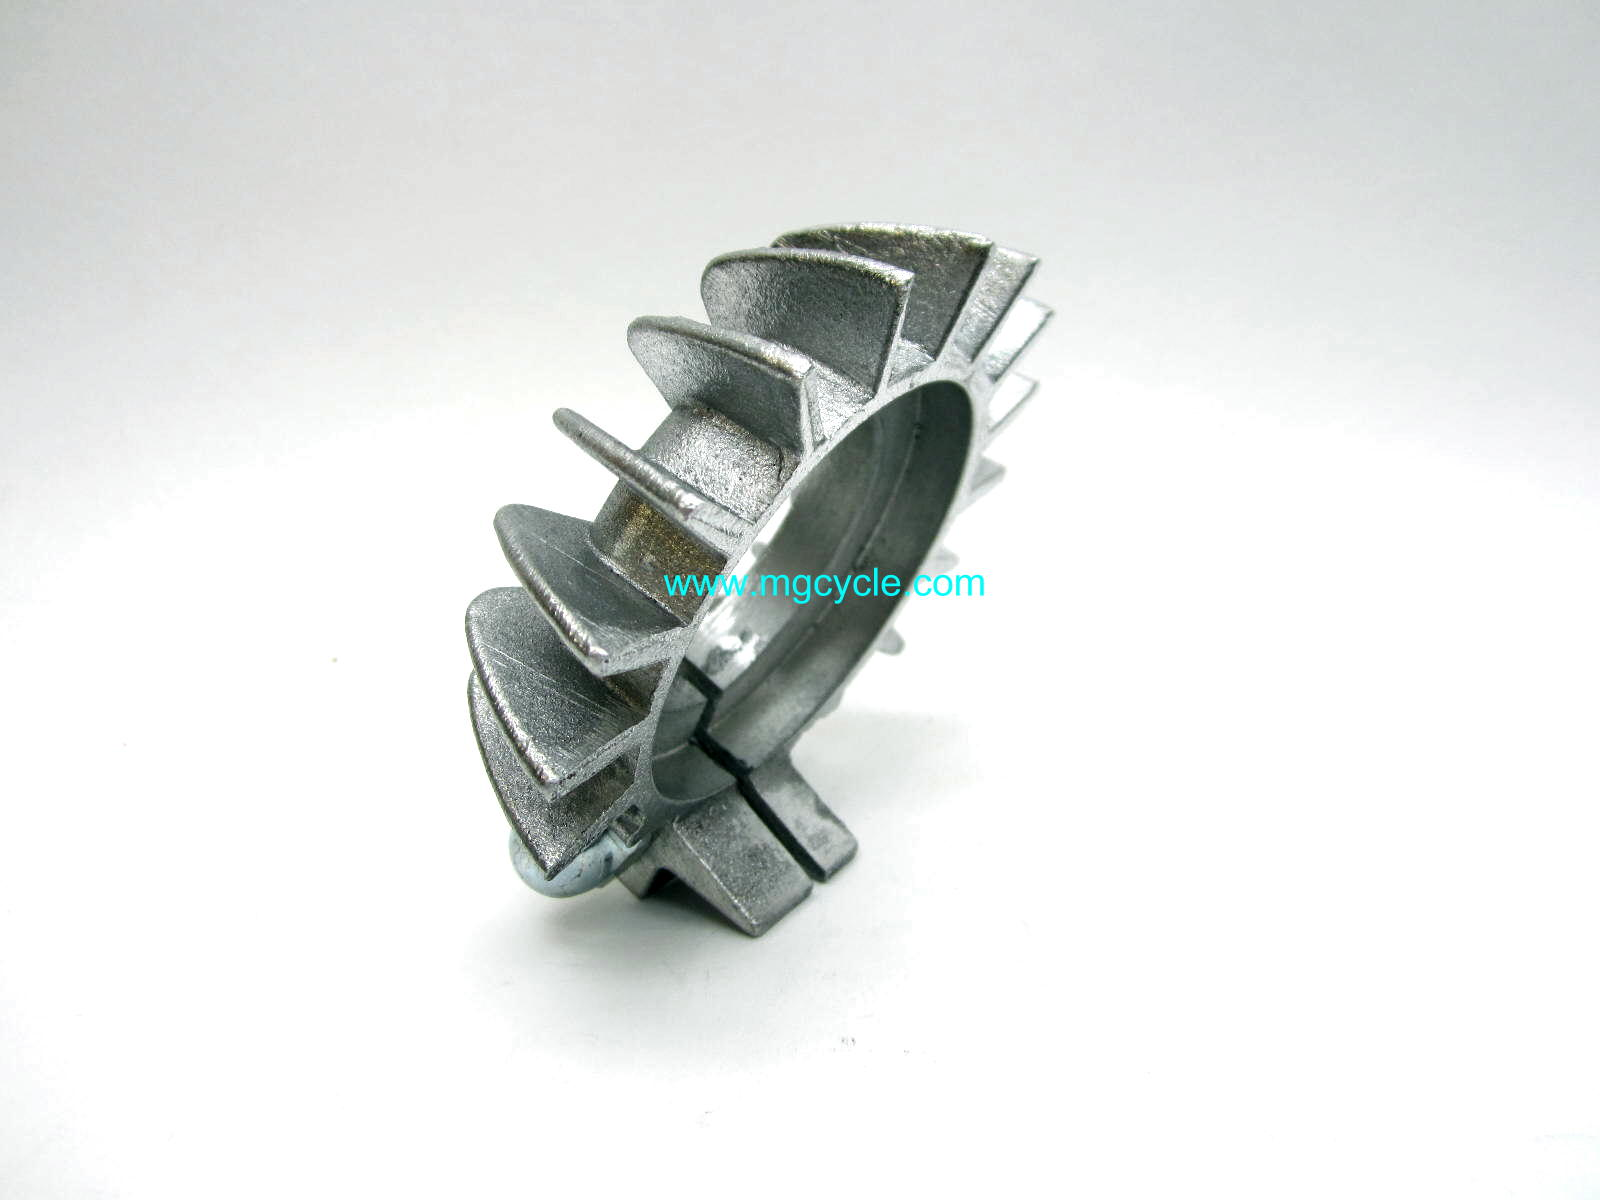 Header pipe nut clamp with cooling fins